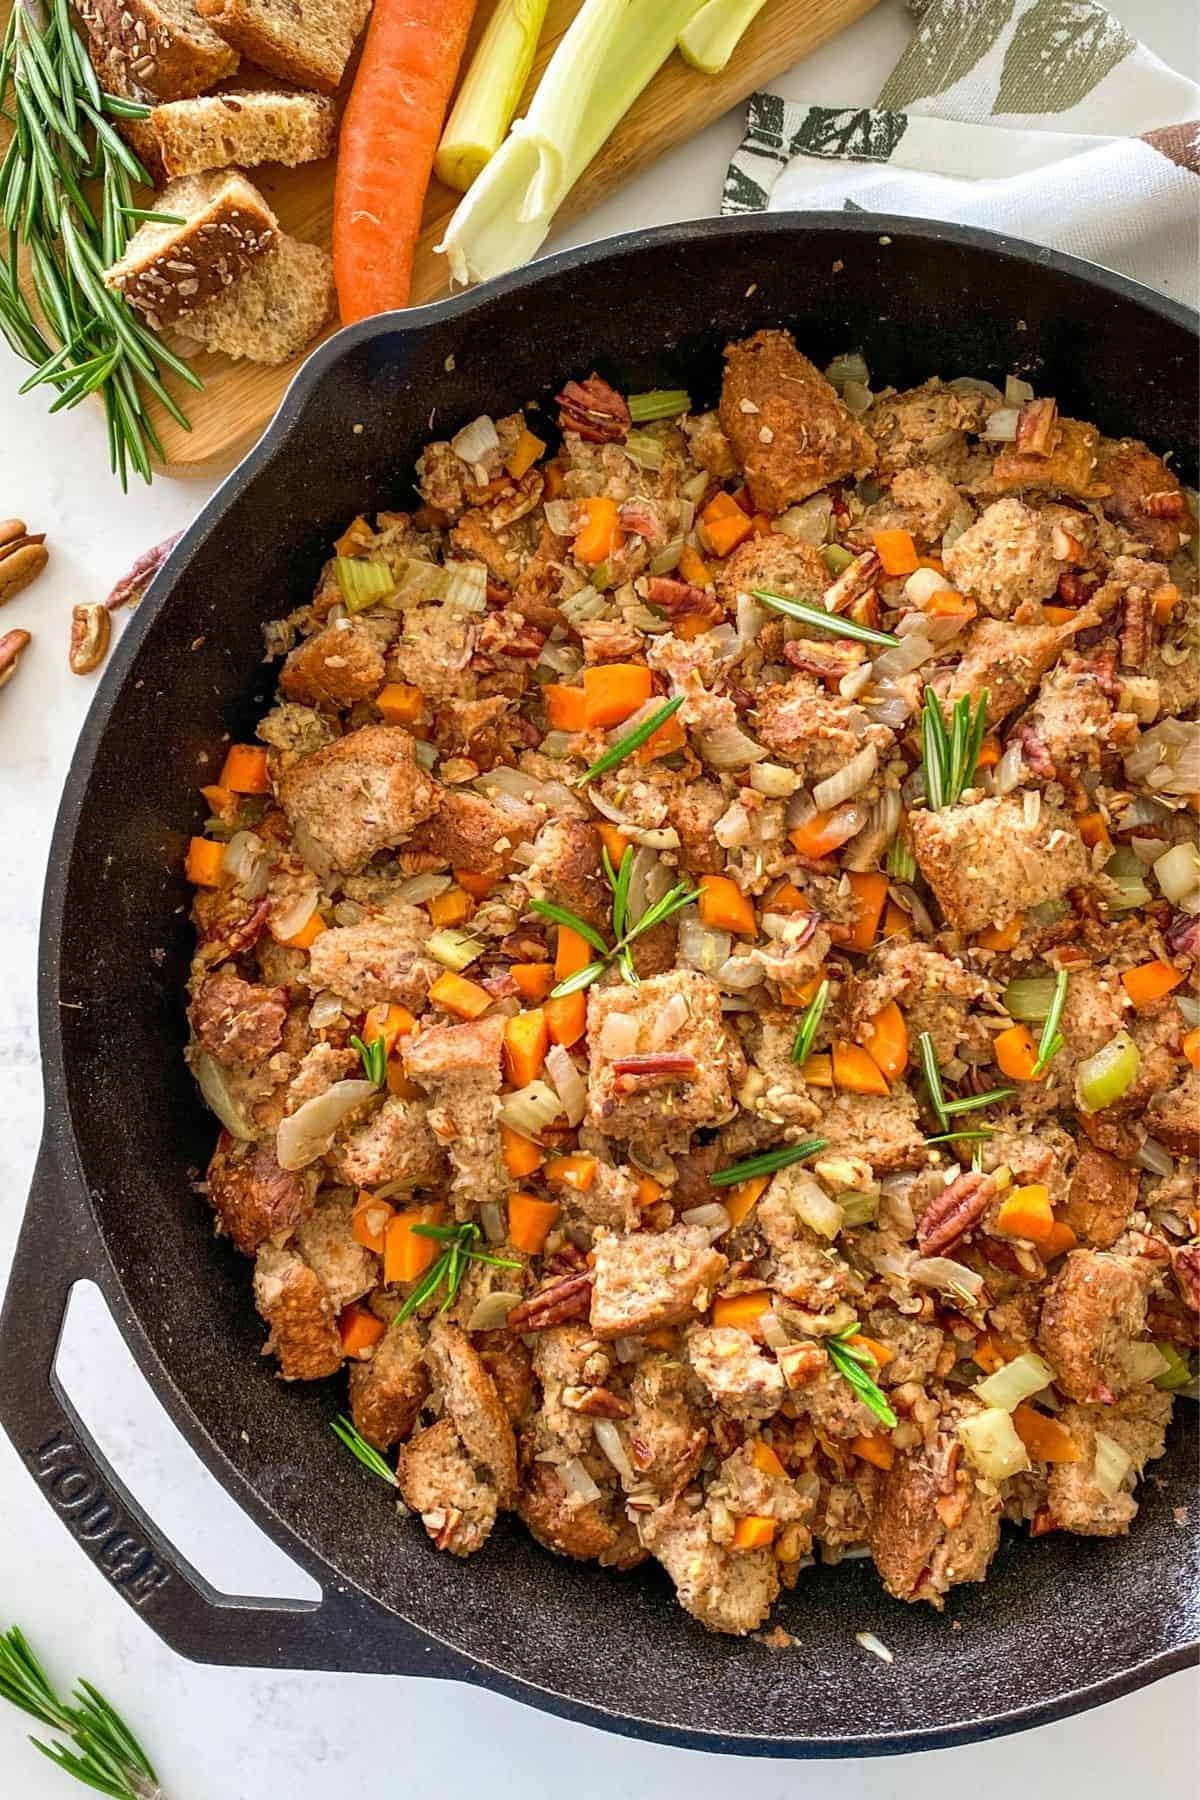 Cast iron pan filled with vegan stuffing.